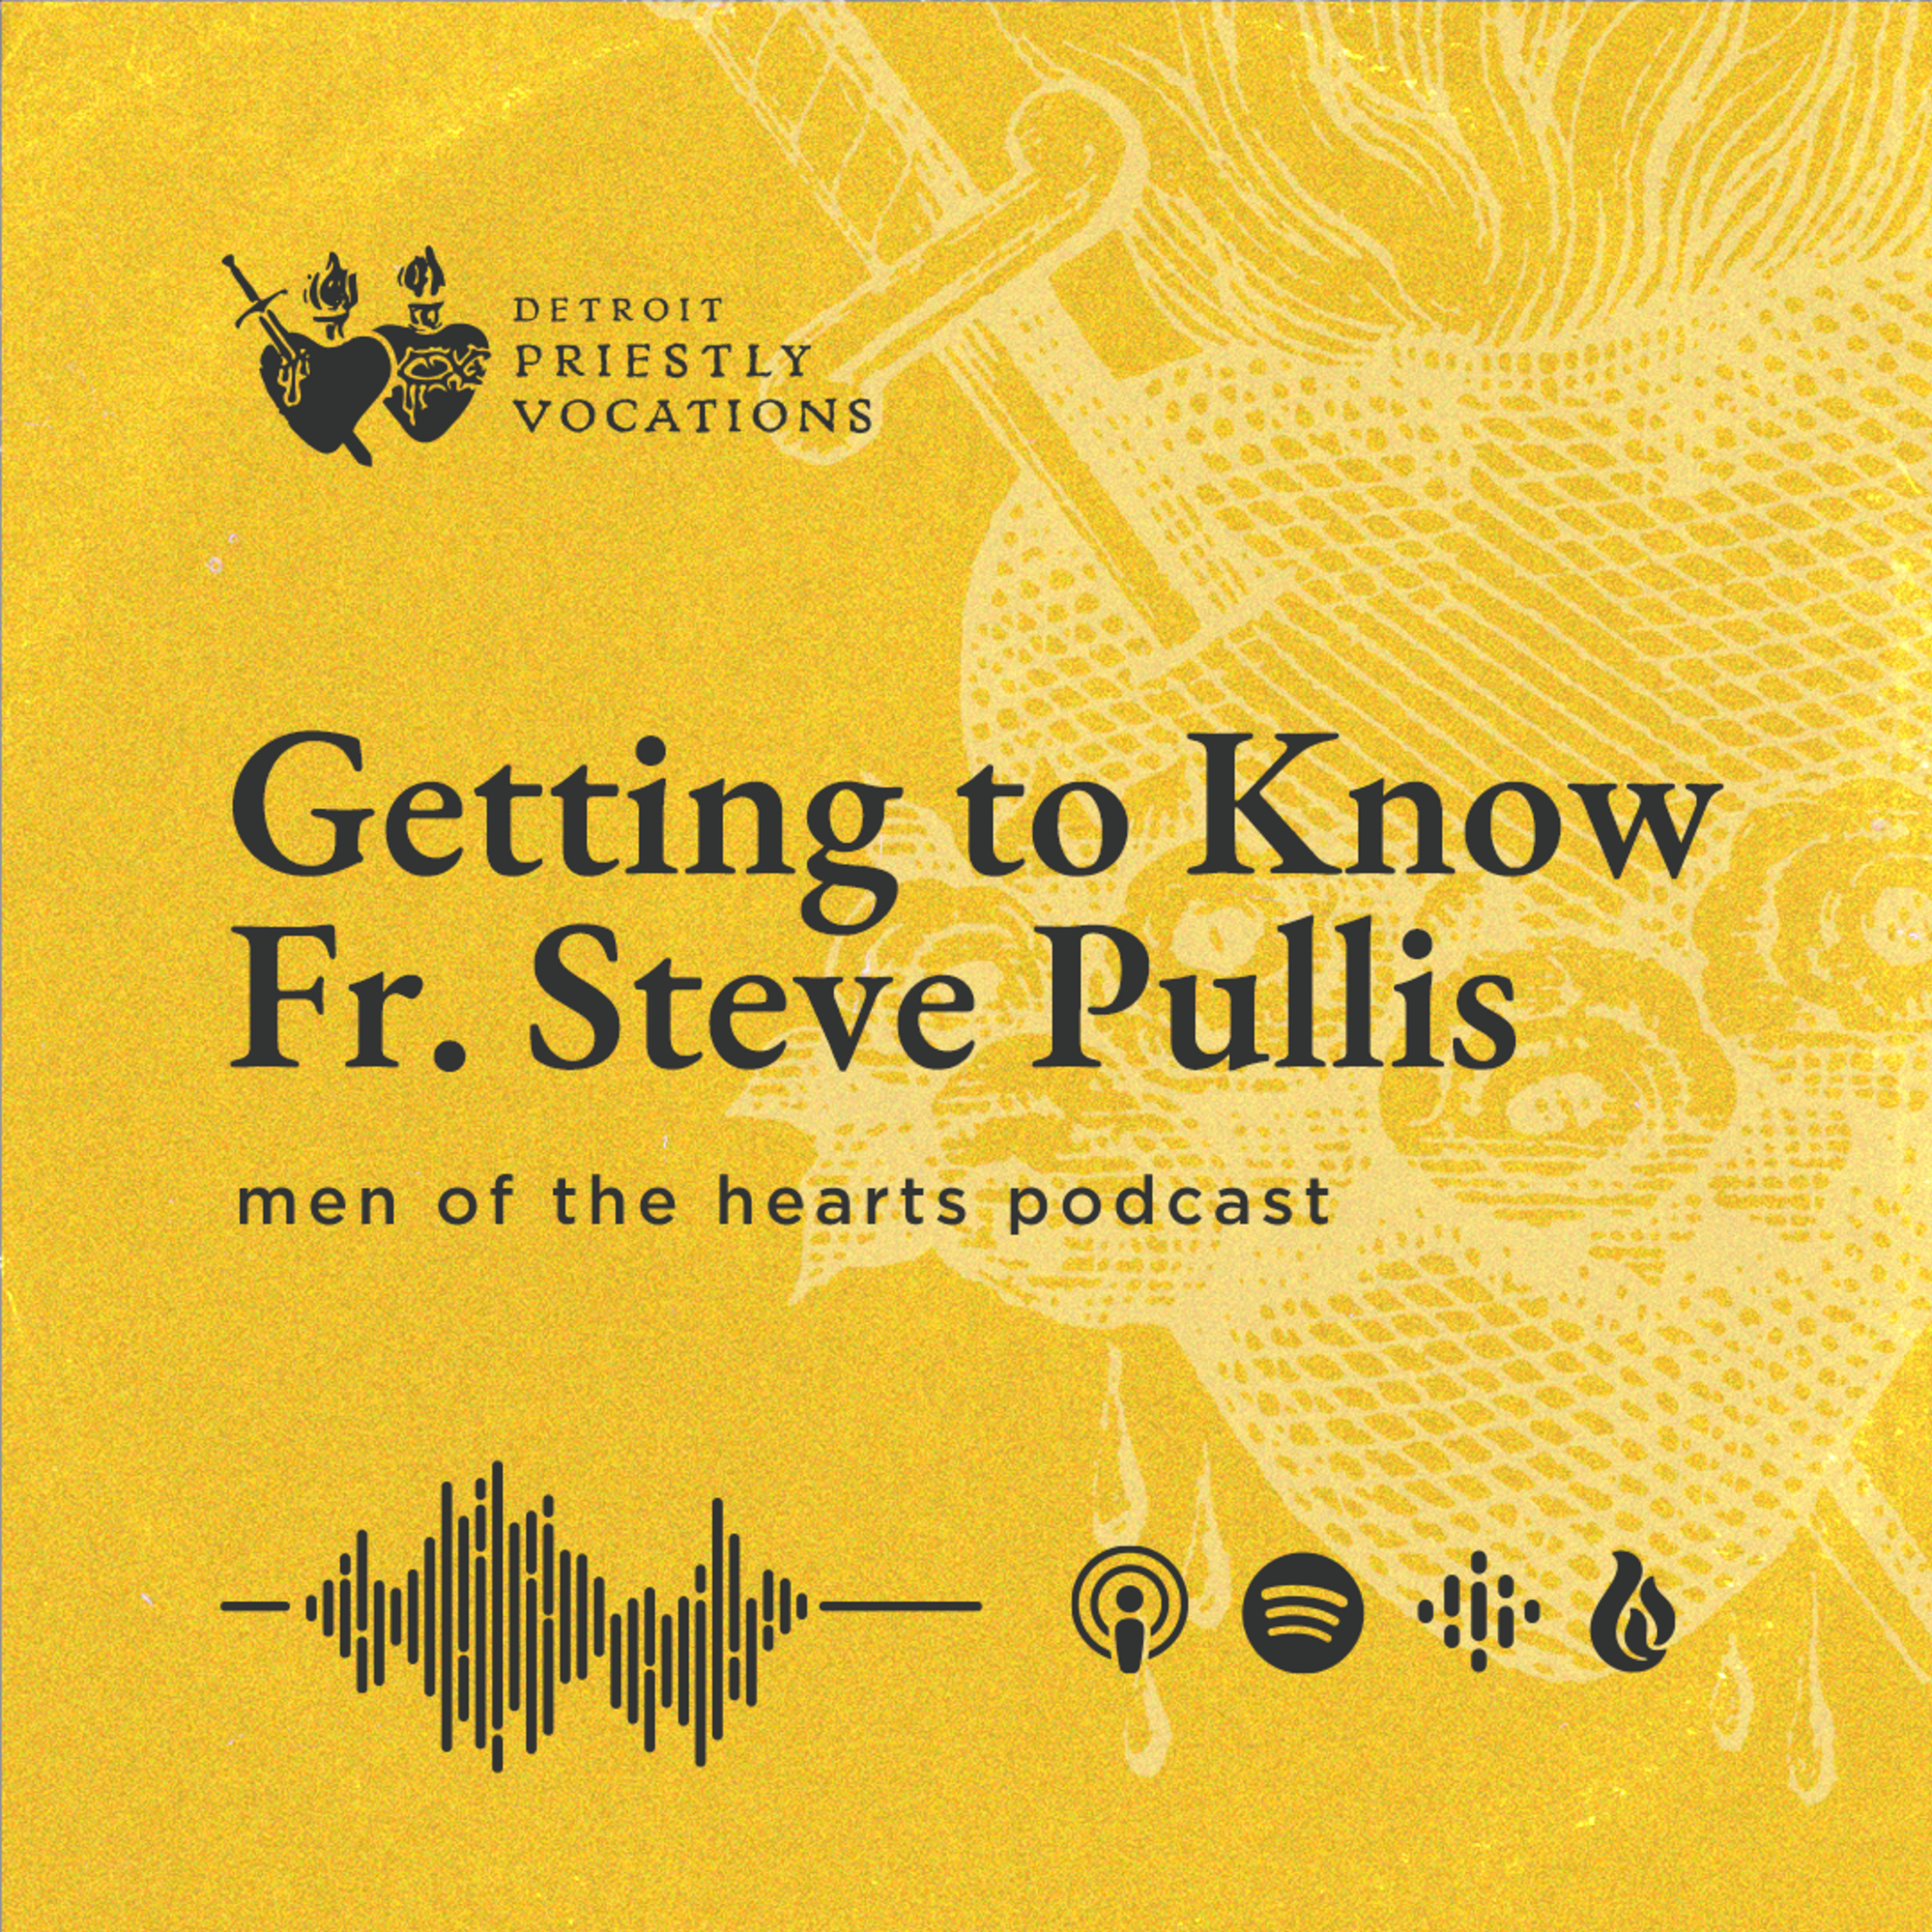 Getting to Know Fr. Steve Pullis